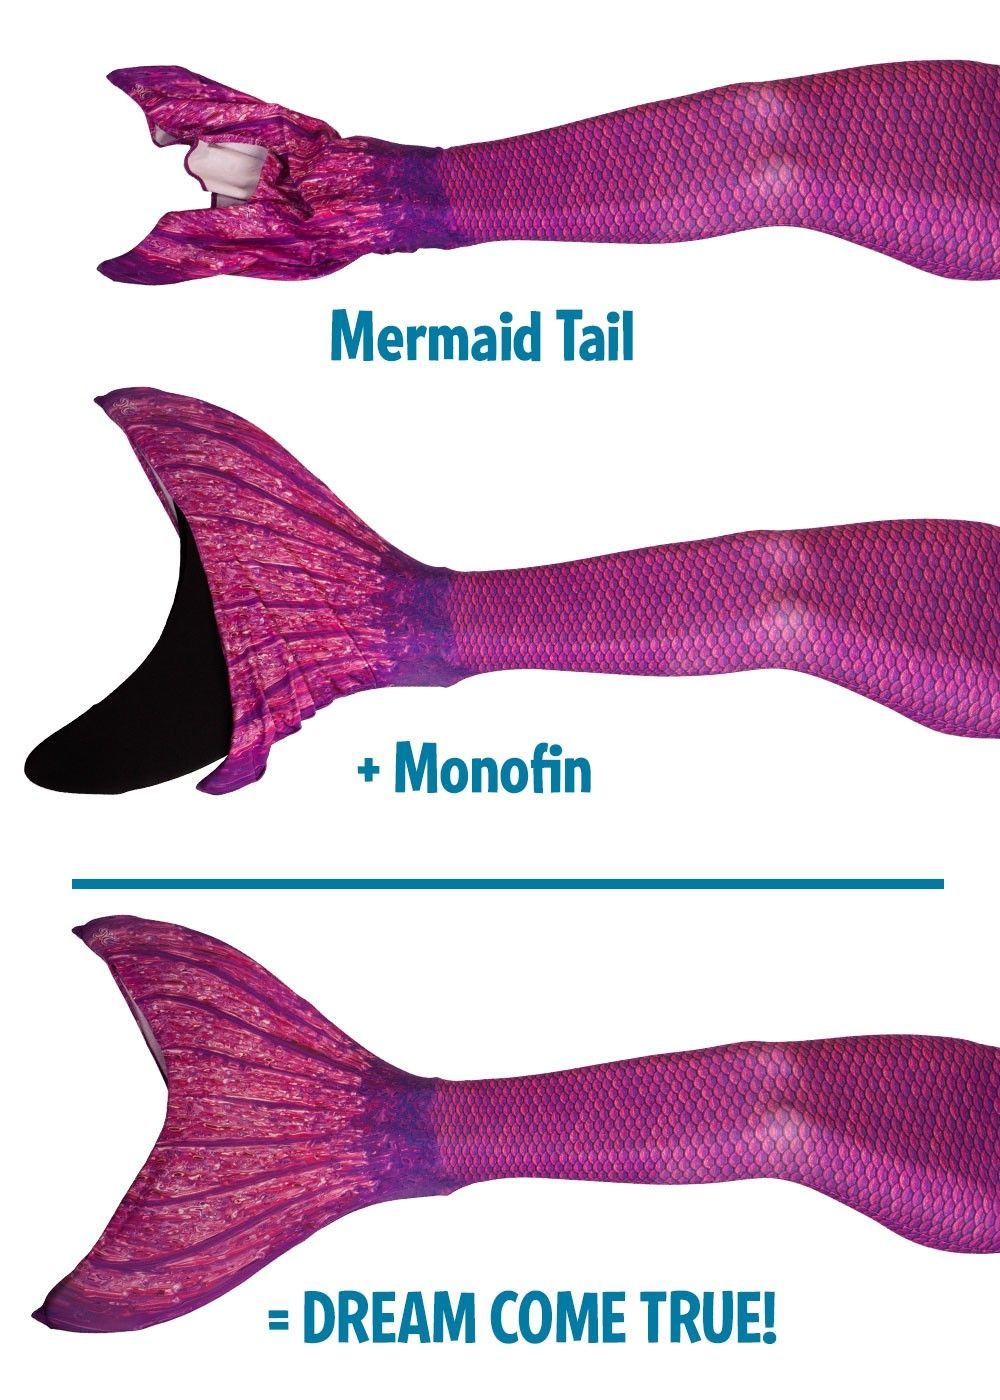 Mermaid tail + Monofin   Dream come true! Share if you agree!  d5696b4a8519